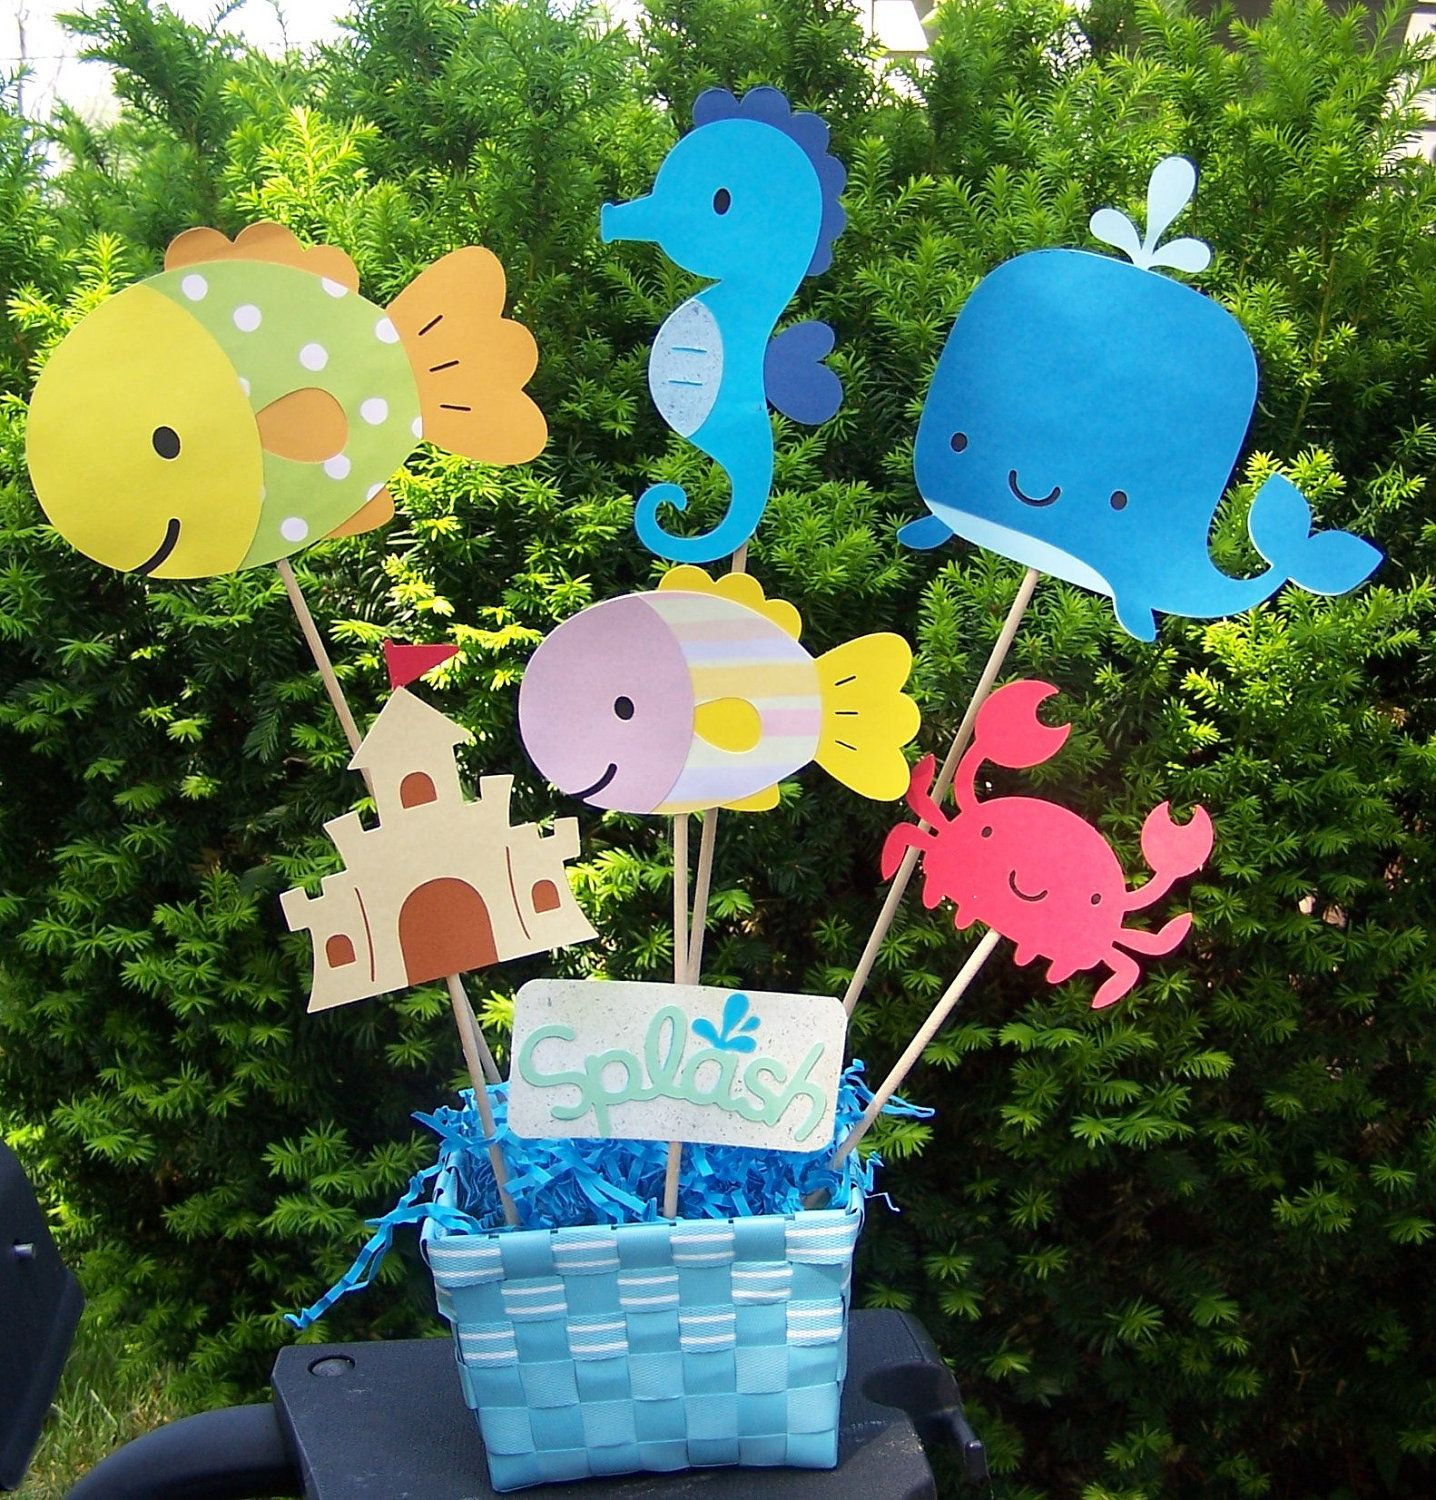 Pool Party/ Beach Party/ Birthday Party Table Decorations